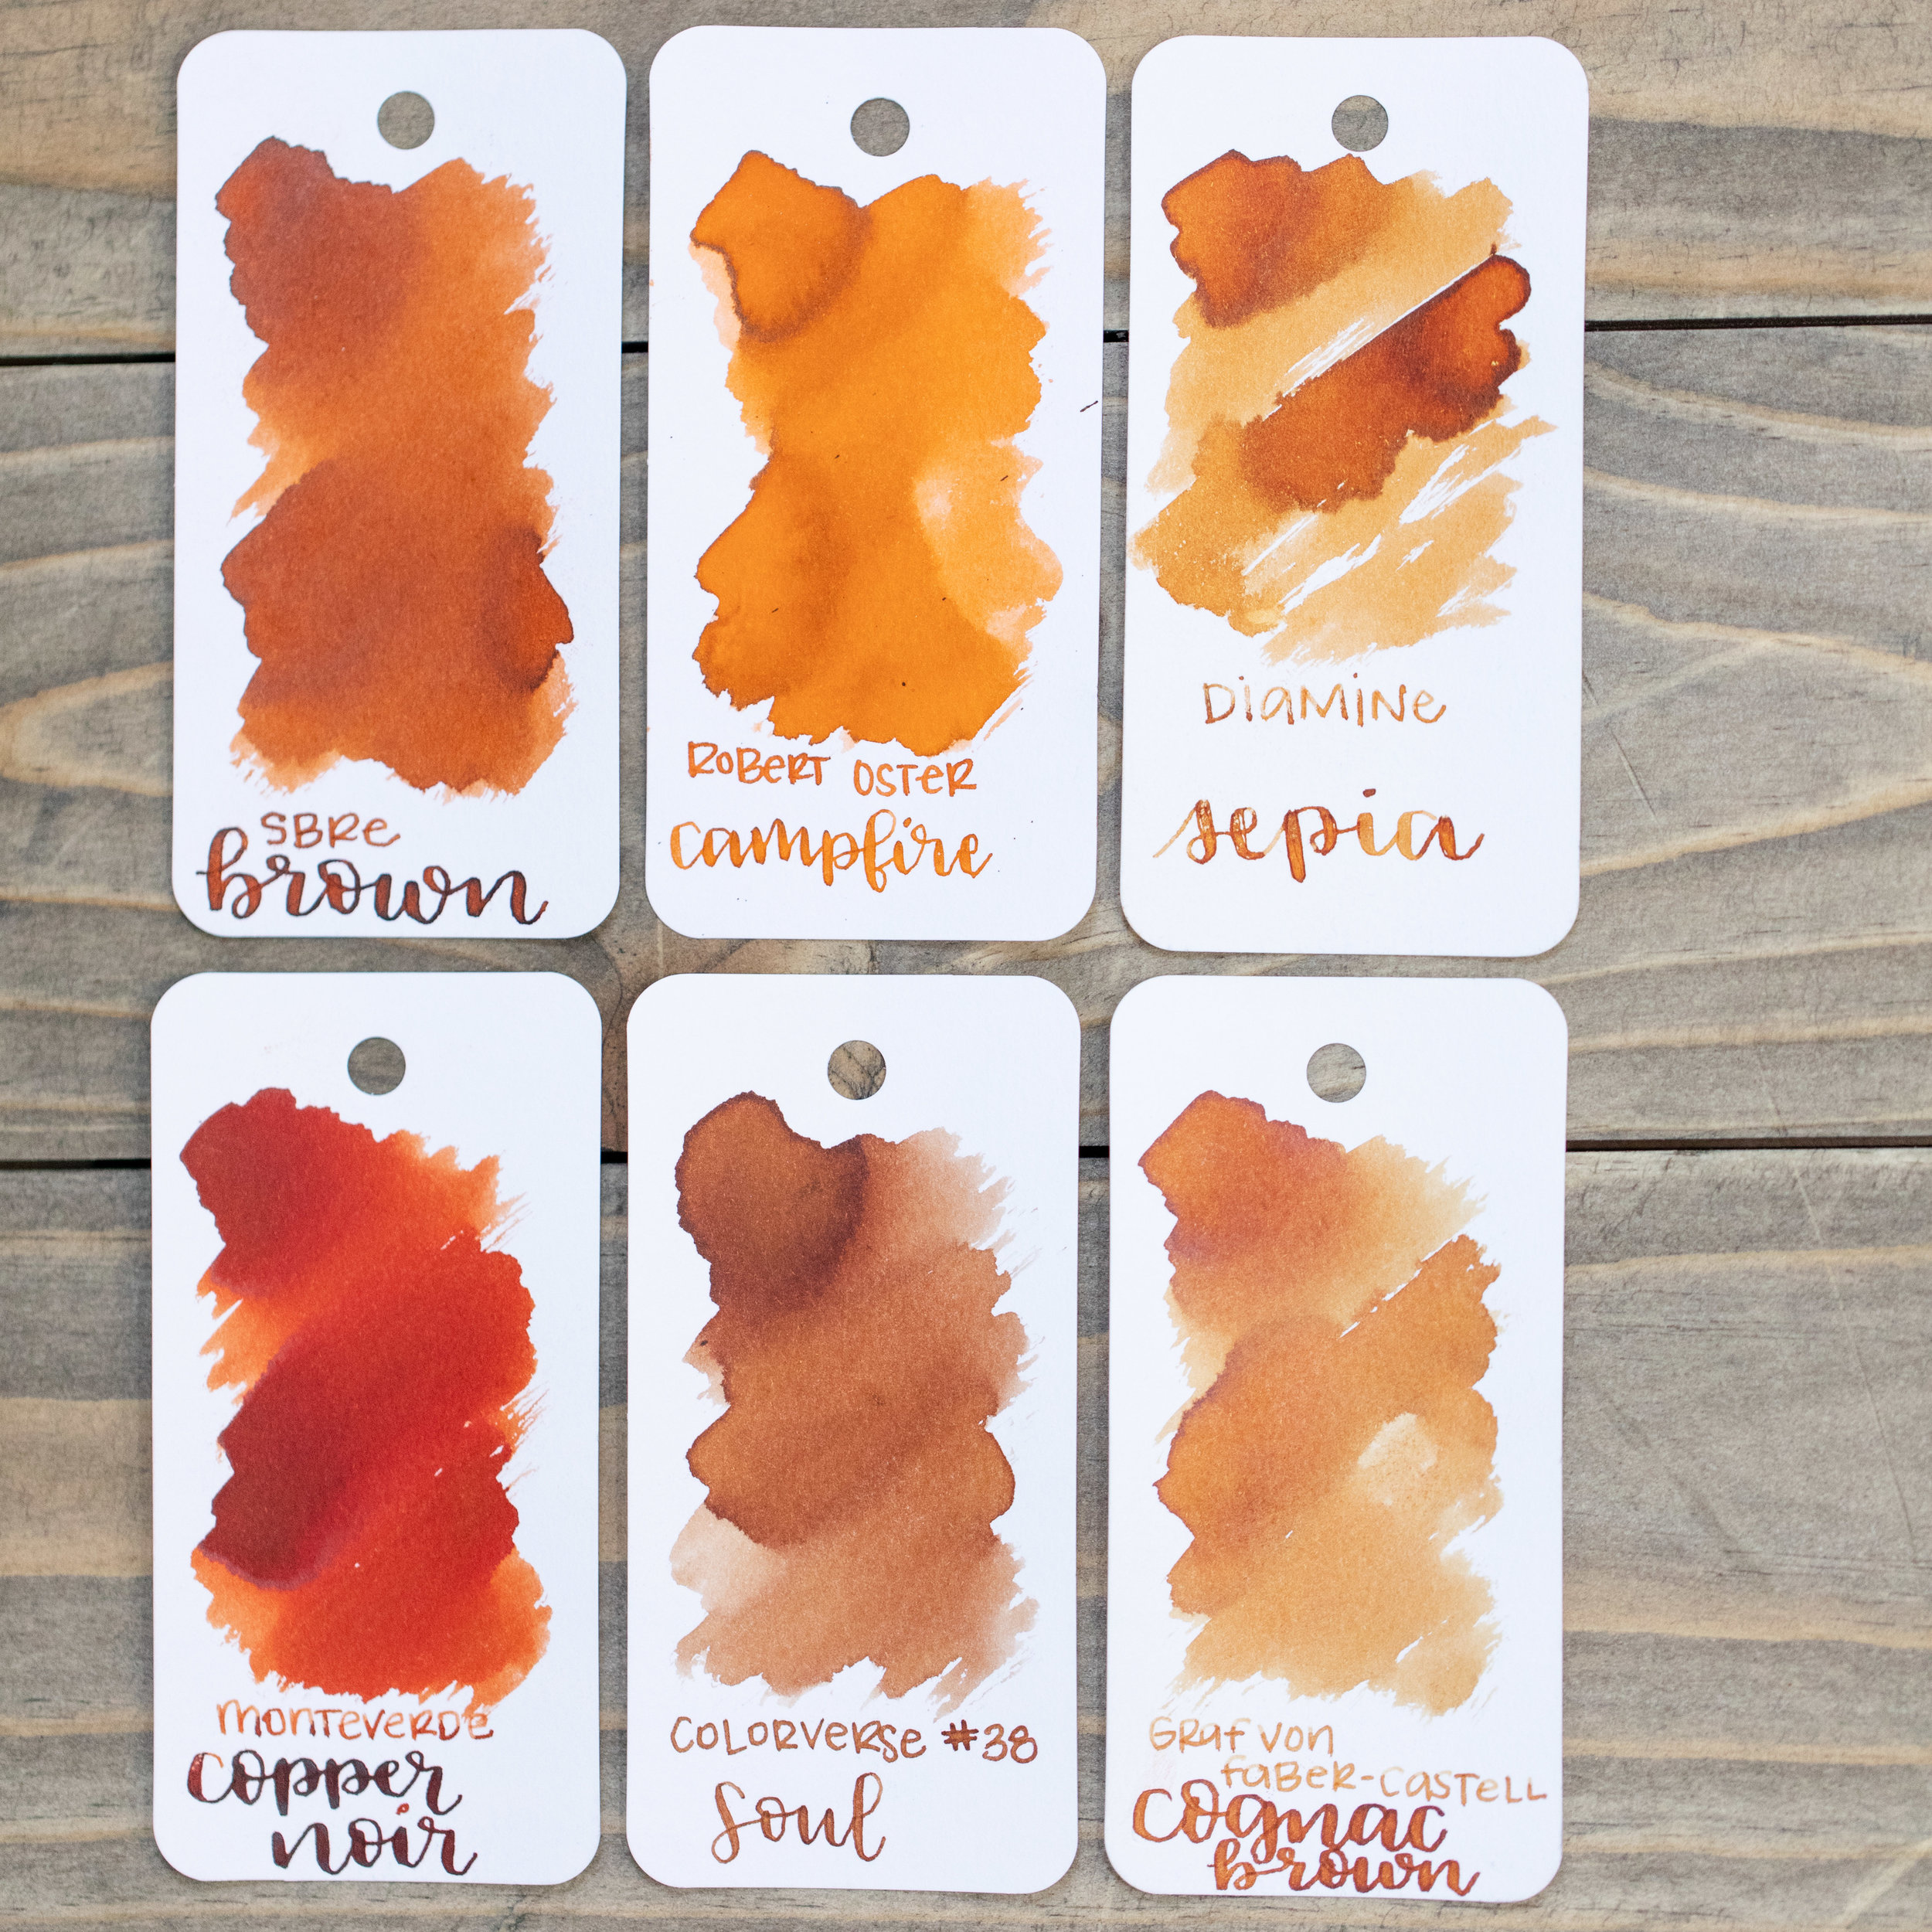 Similar inks: - Campfire is lighter and brighter than SBRE Brown. Click here to see the Robert Oster inks together.